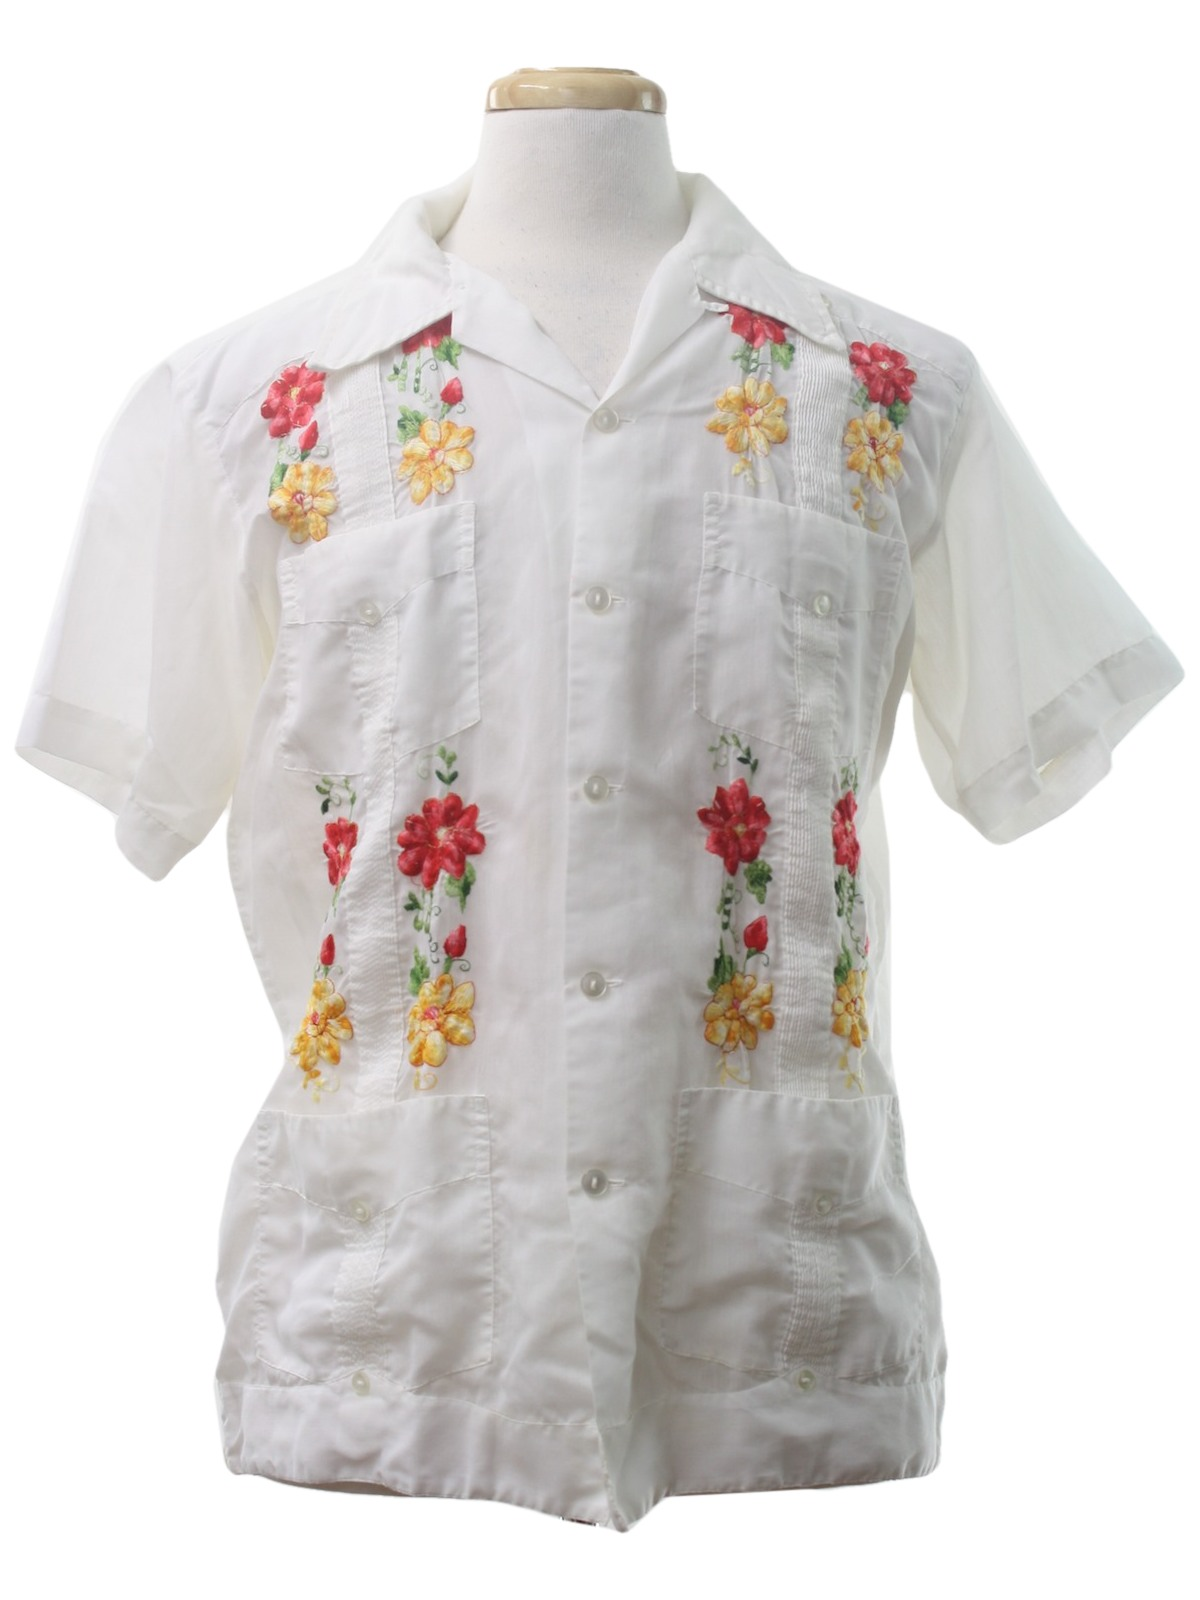 retro seventies guayabera shirt  70s